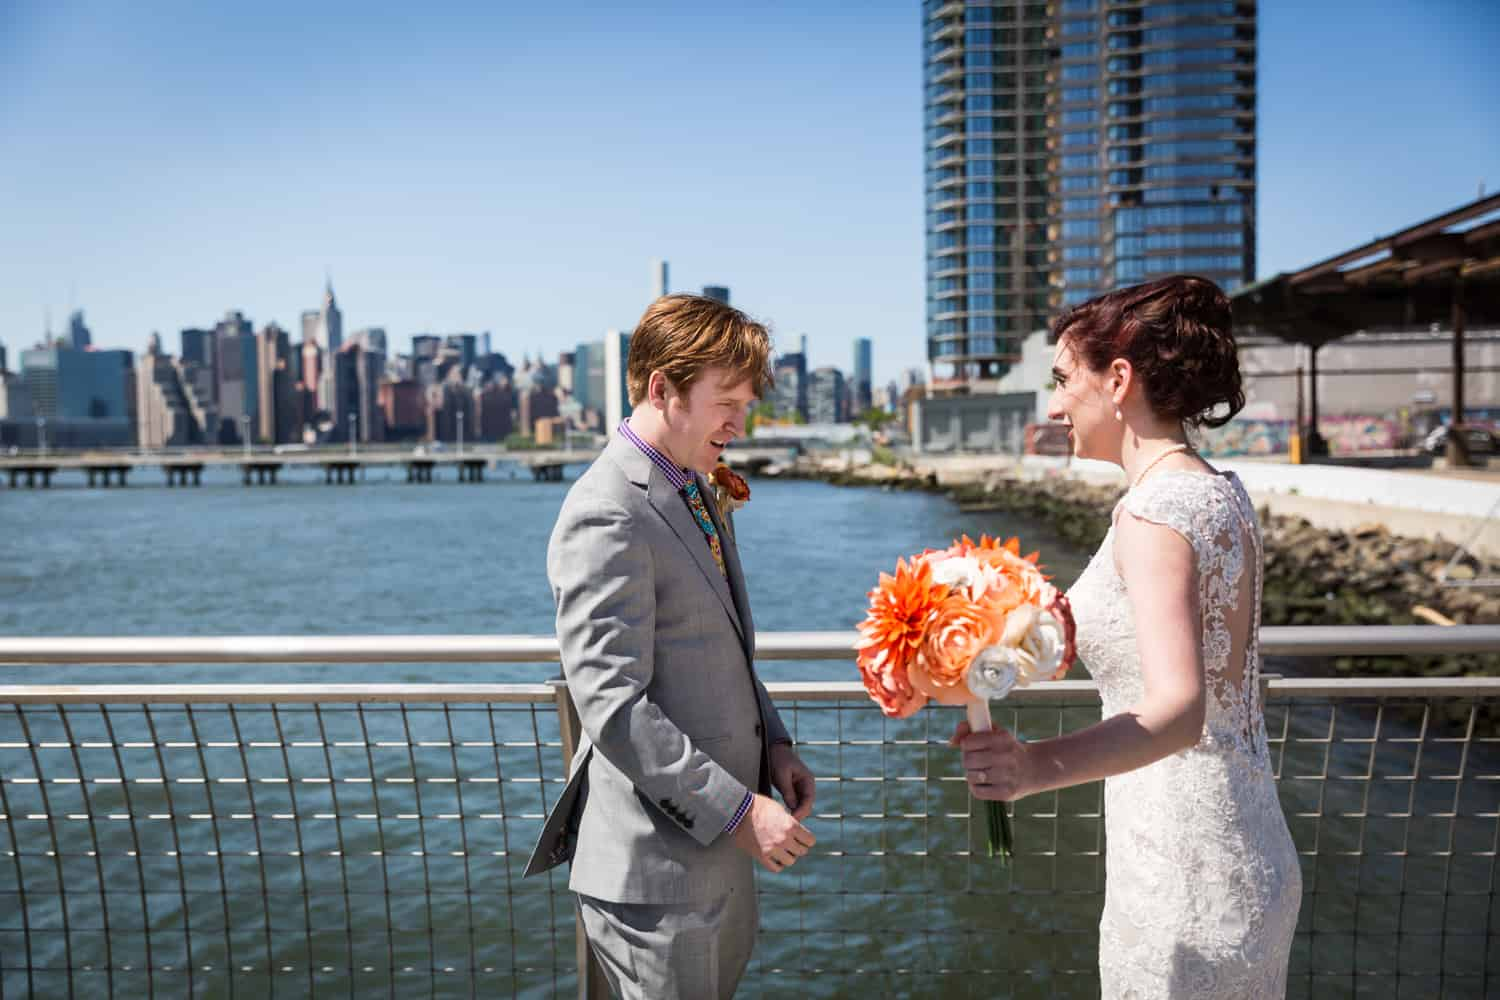 Groom seeing bride for first time during first look